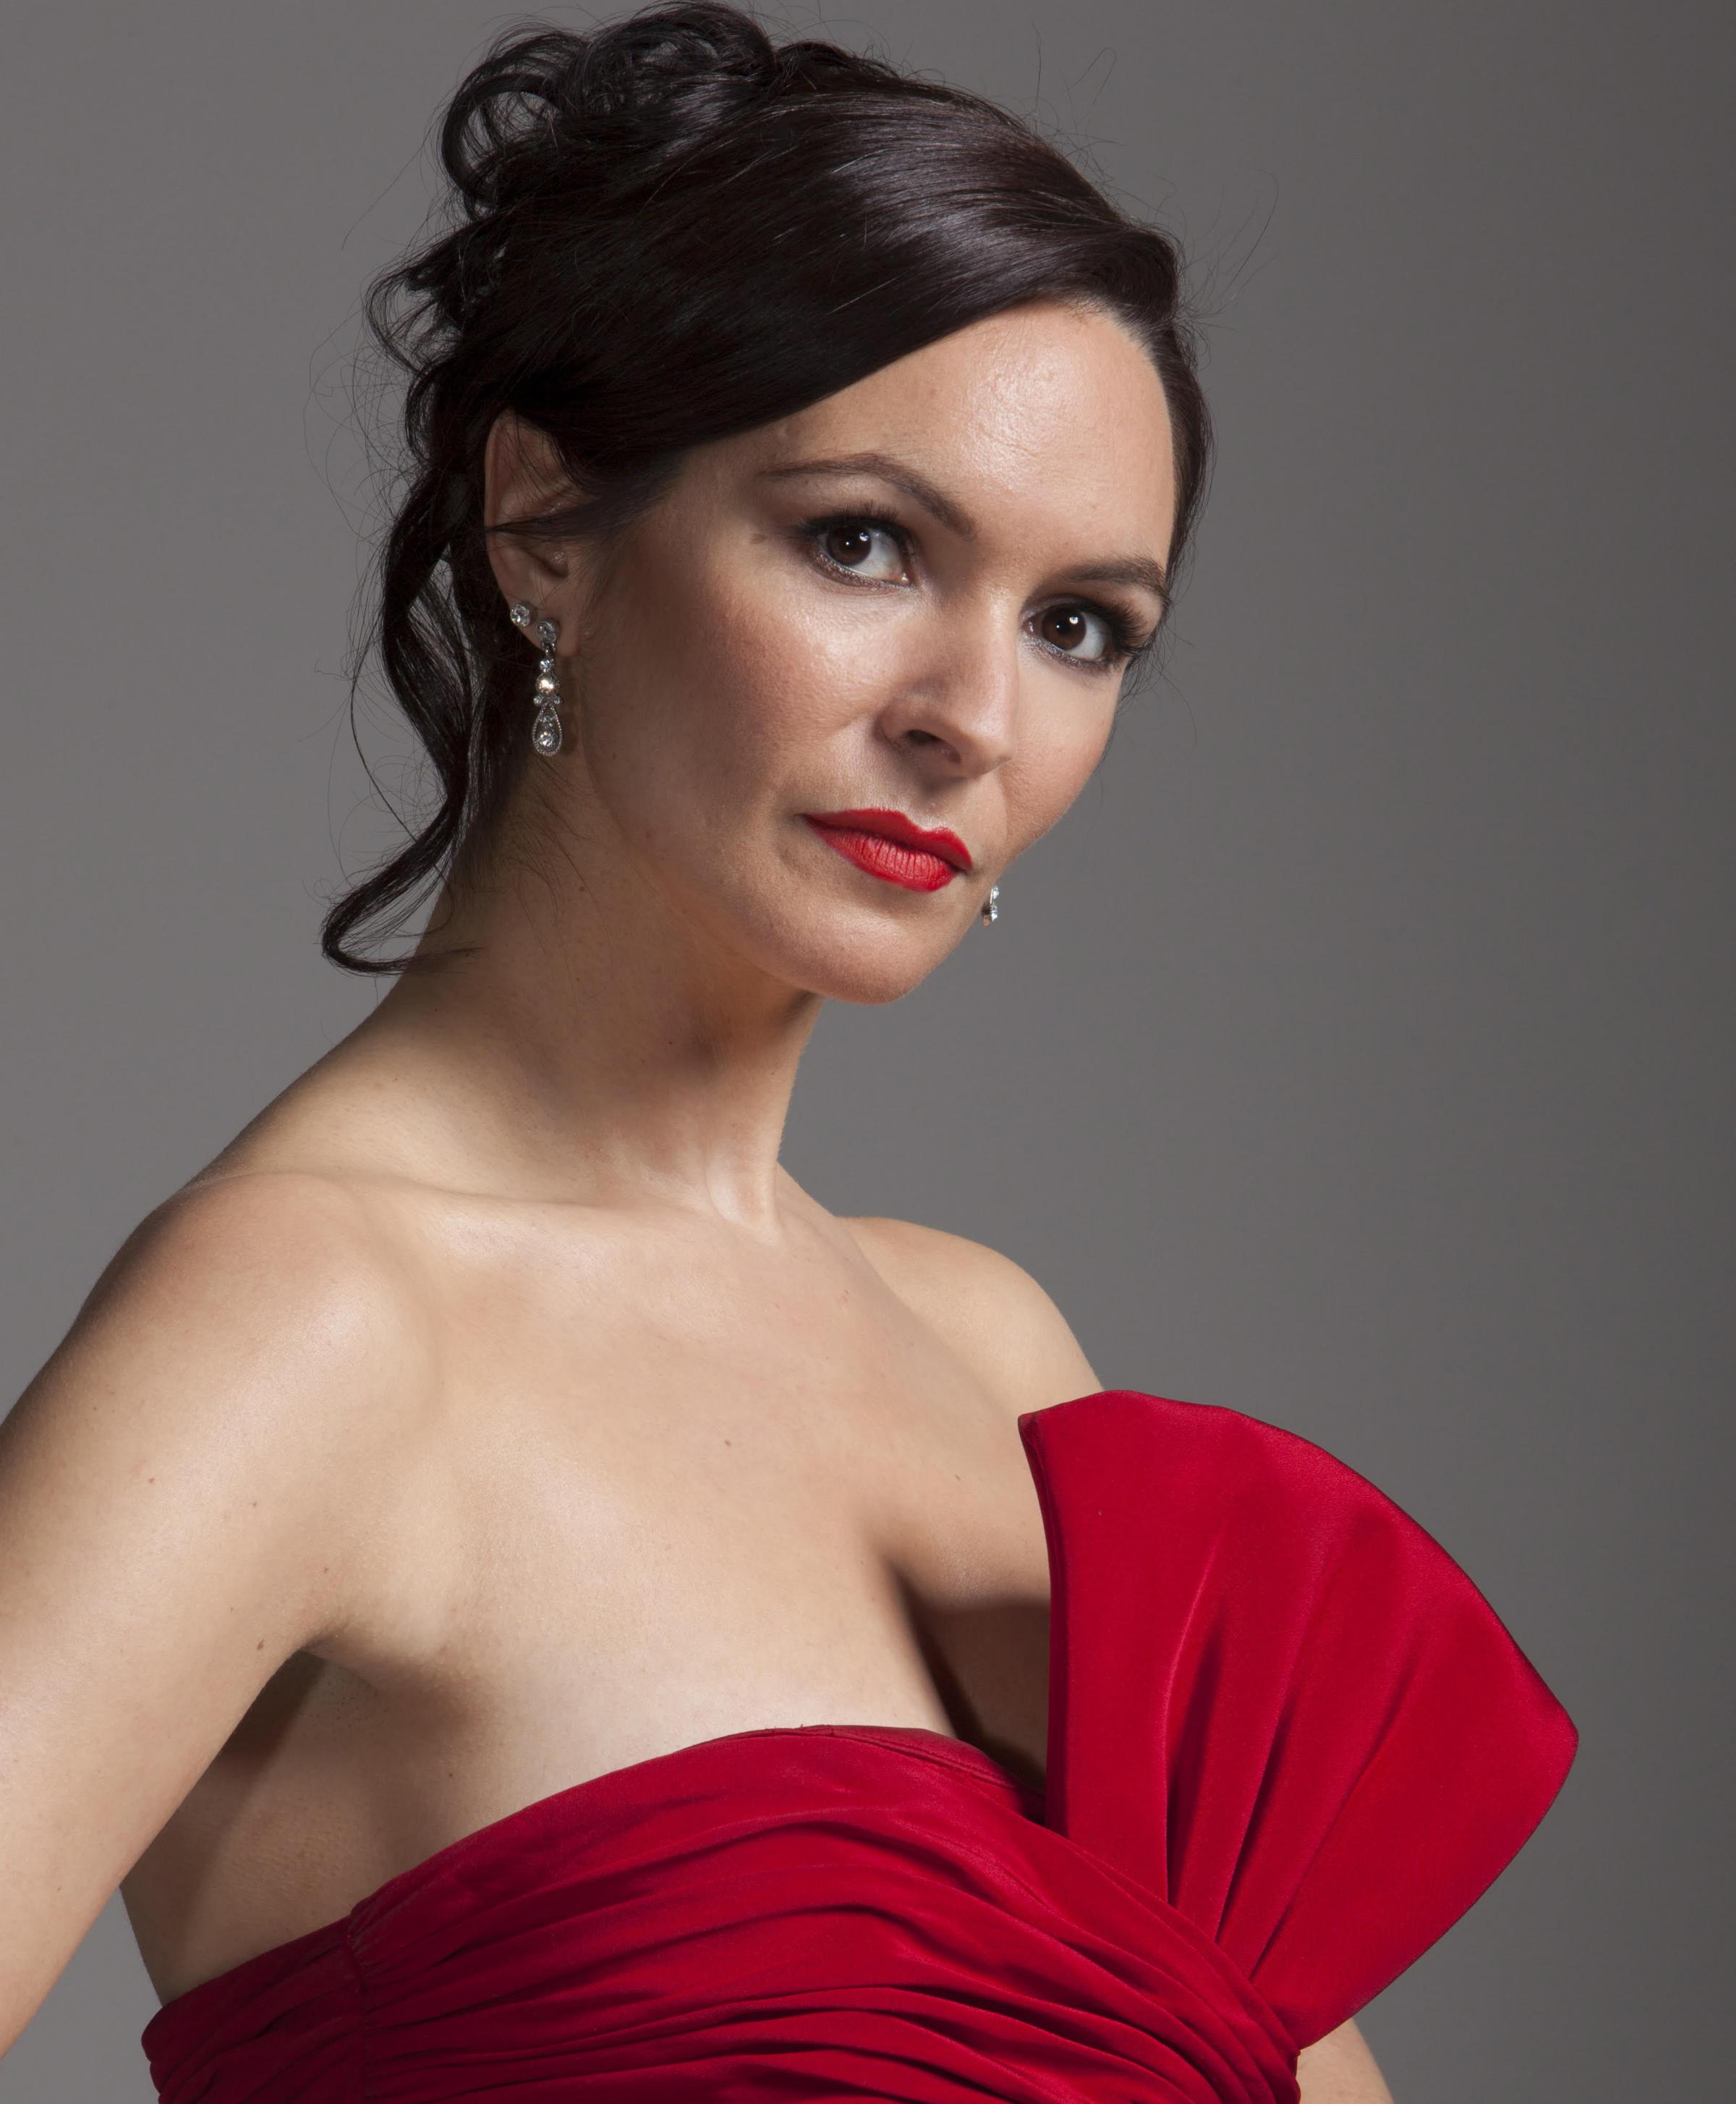 Mezzo-soprano Hannah Pedley sings the title role in Carmen at the Oxford Playhouse